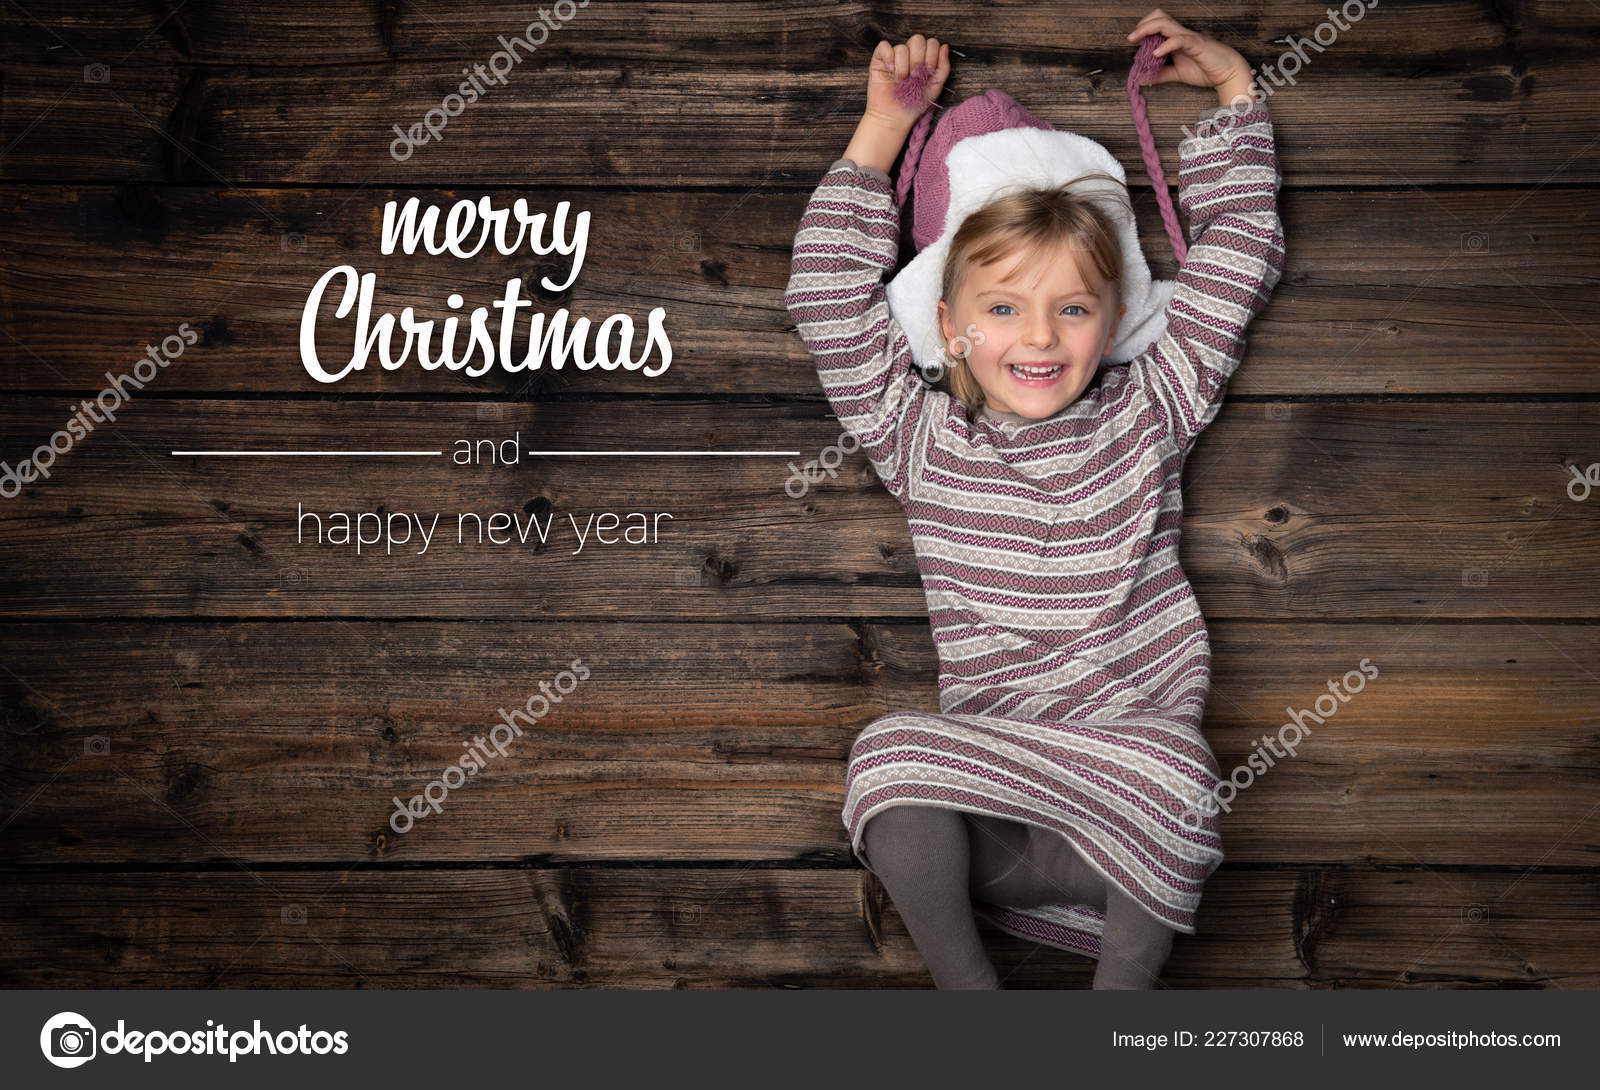 merry christmas and happy new year greetings in vertical top view dark vintage wood beautiful happy child girl in homewearchildhood concept